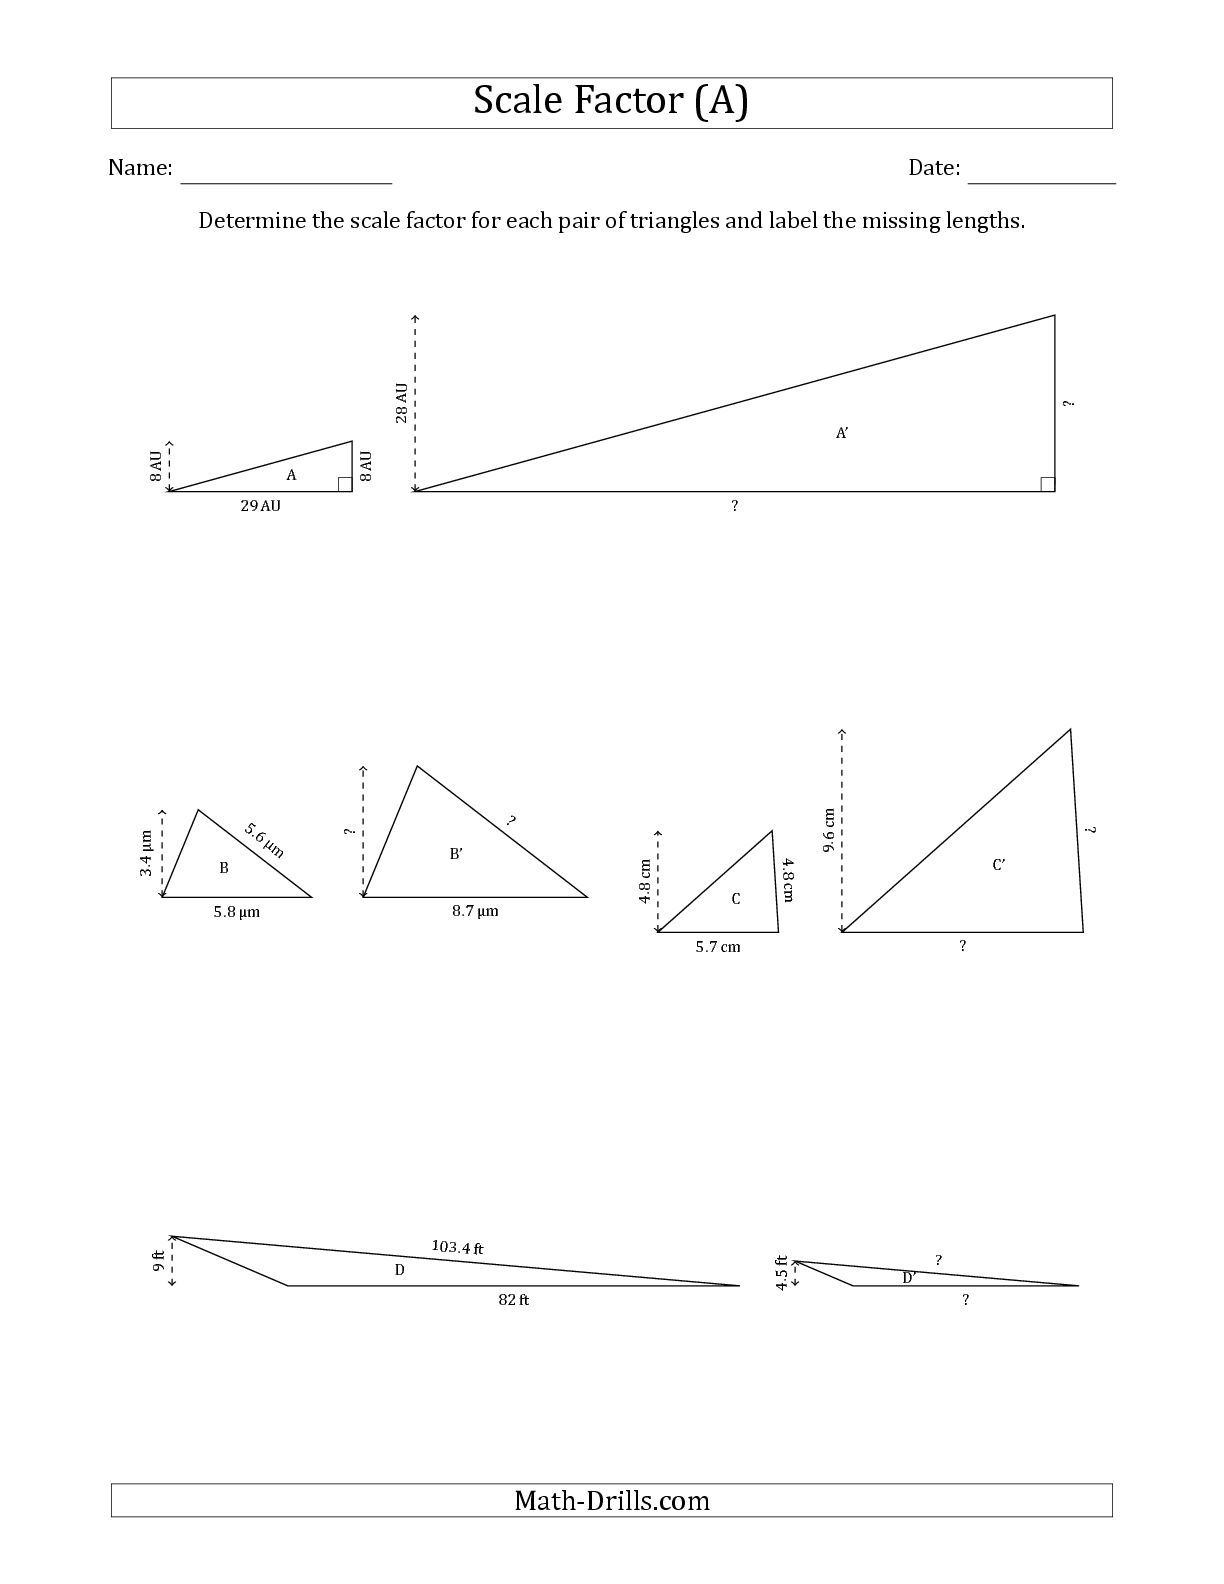 The Determine the Scale Factor Between Two Triangles and Determine the  Missing Lengths (Scale Factors in…   Geometry worksheets [ 1584 x 1224 Pixel ]